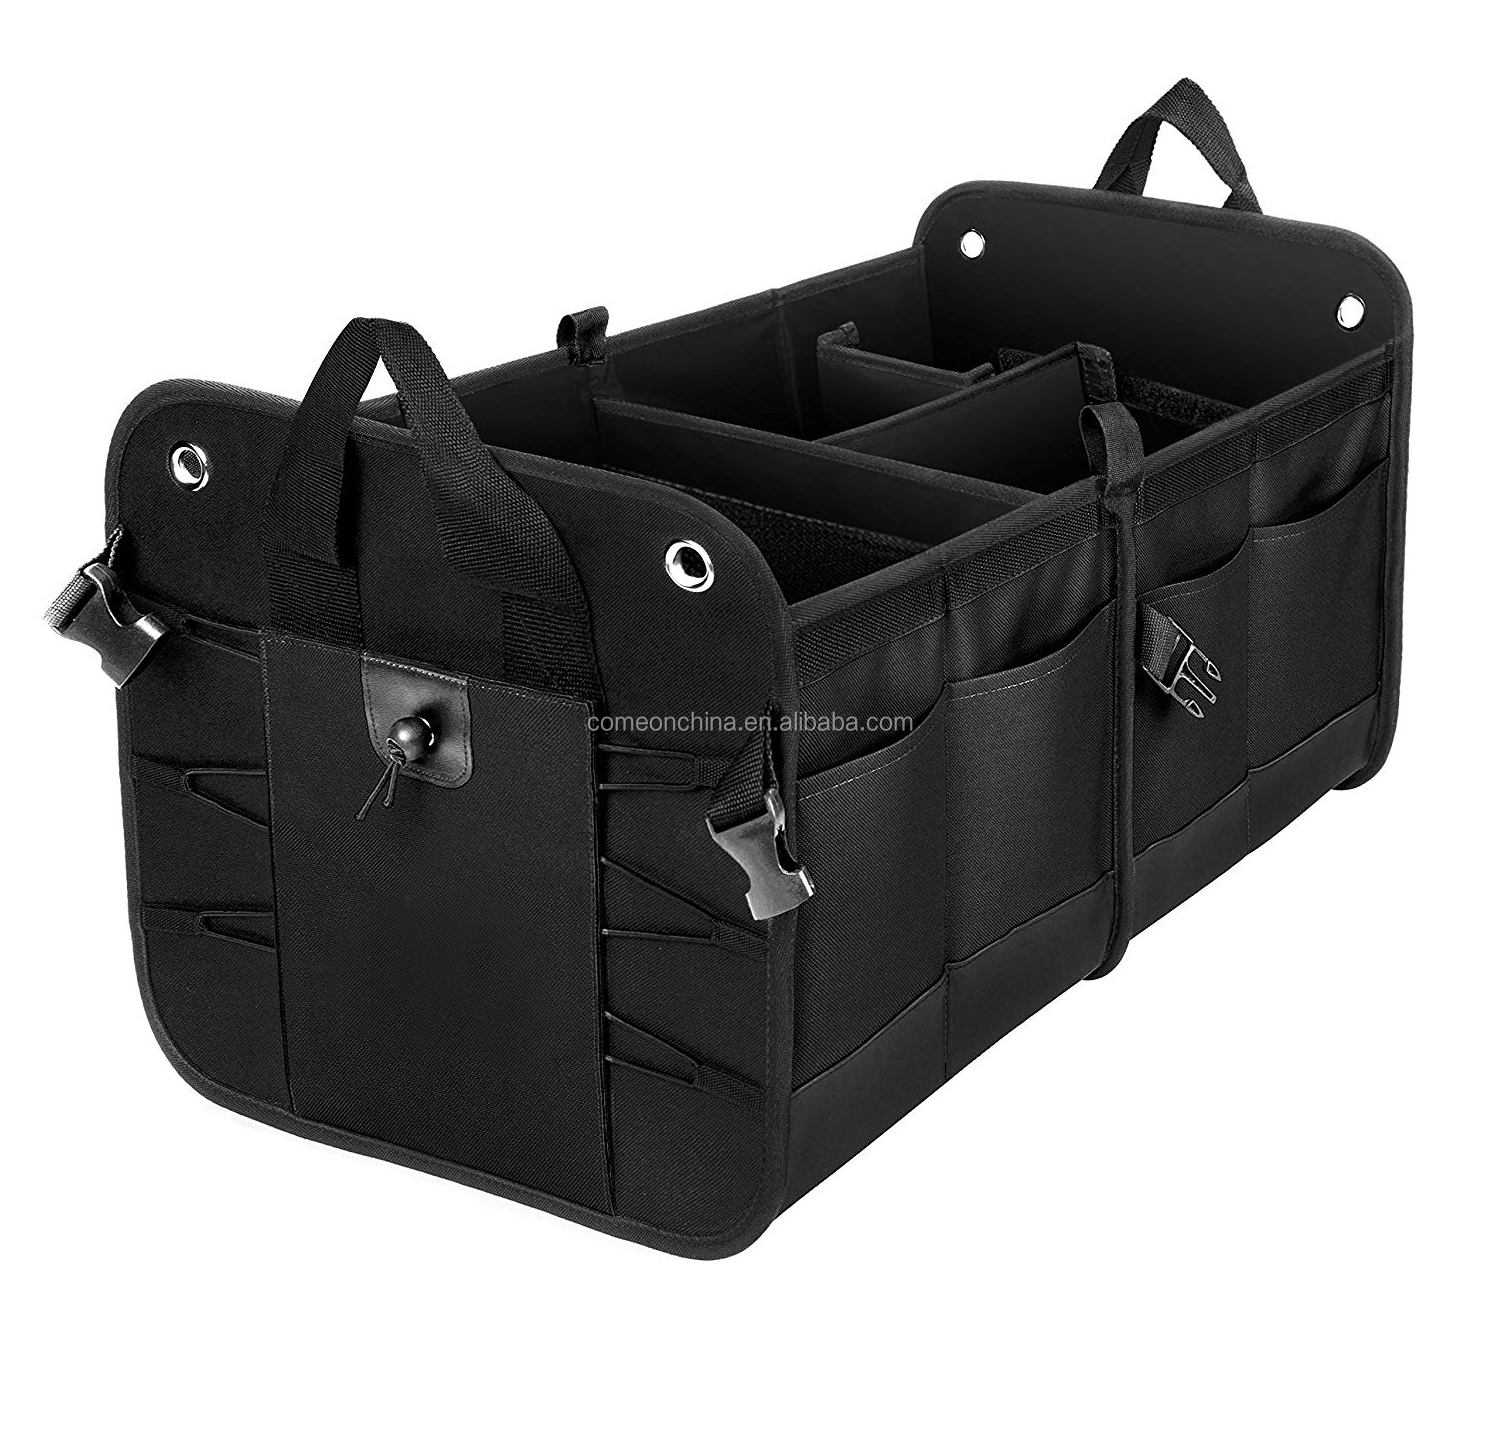 Foldable Collapsible Trunk Organizer Storage Box